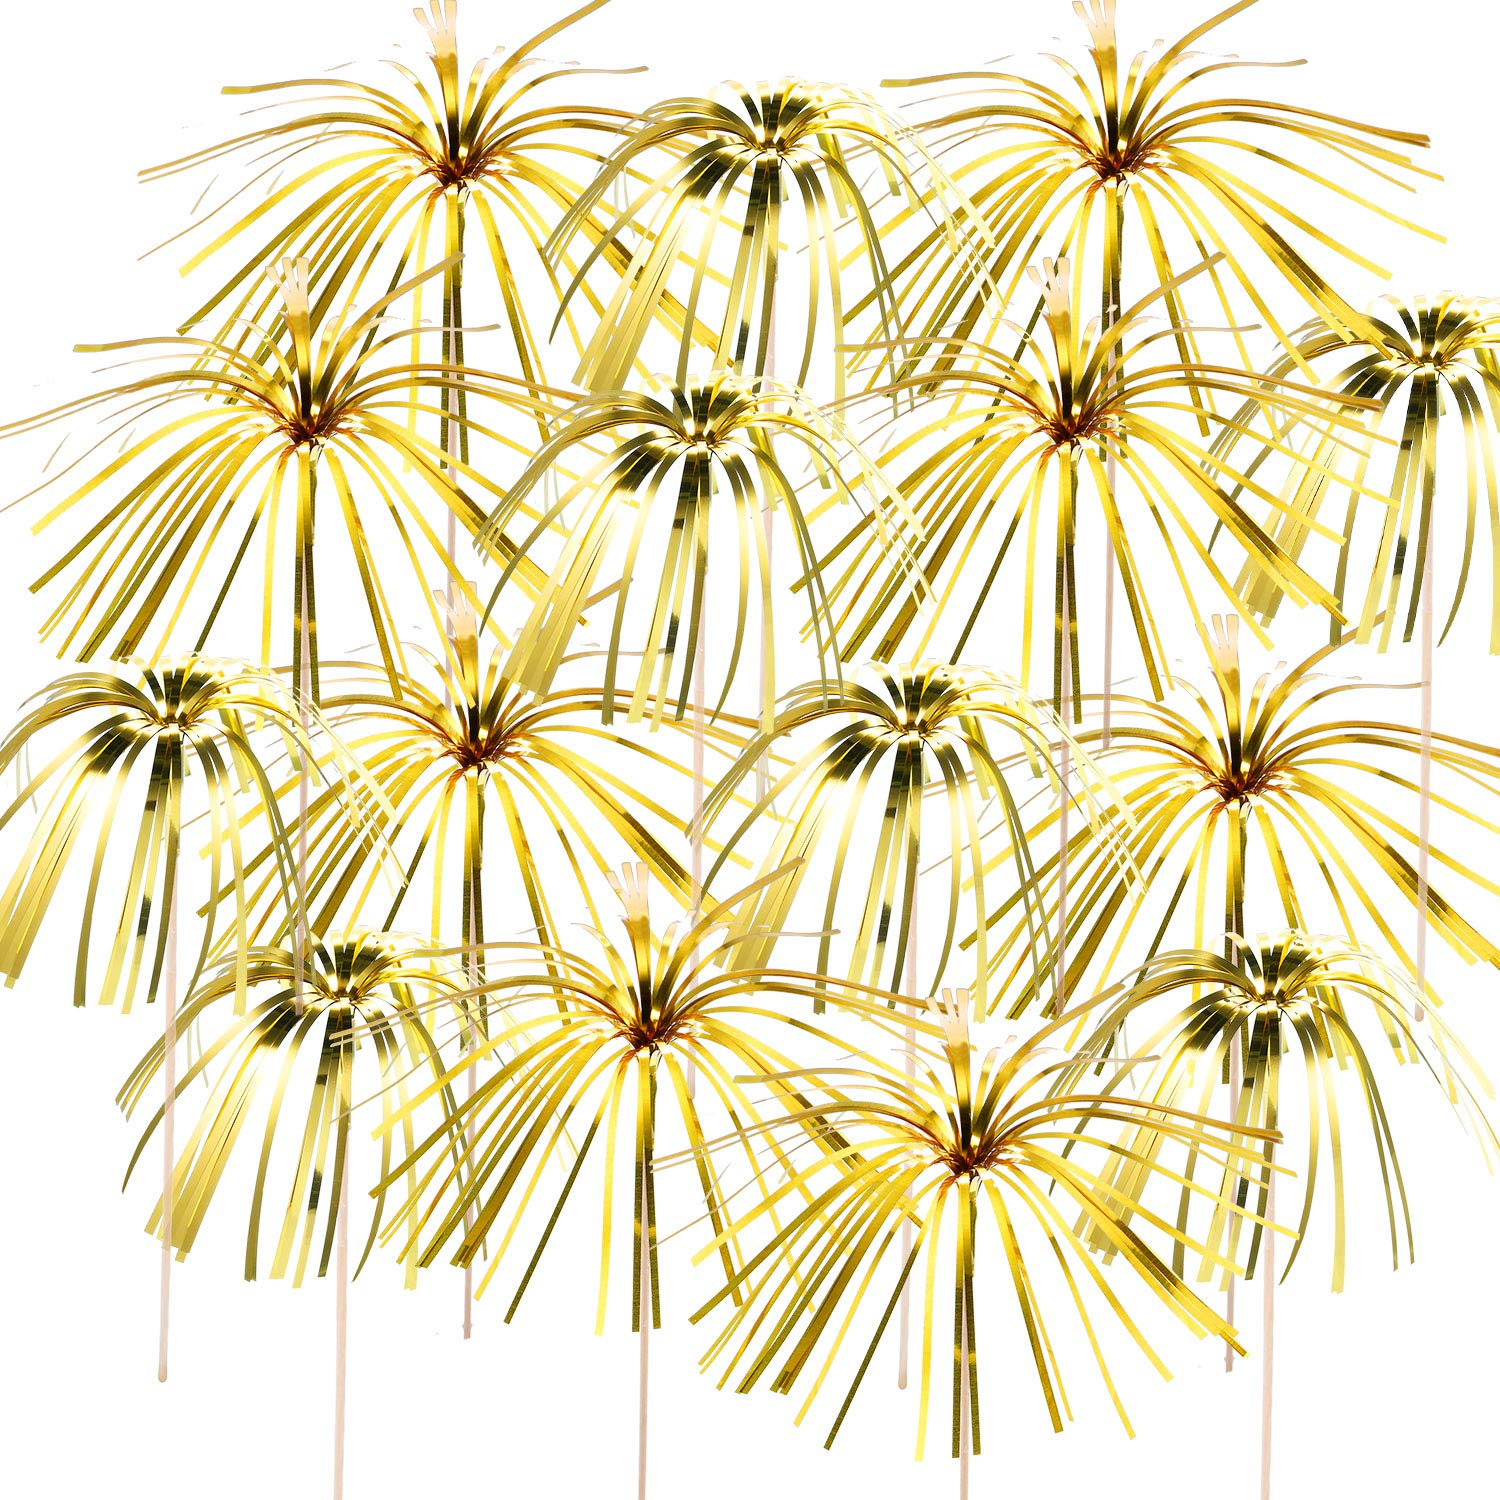 TecUnite 100 Pieces Foil Frill Firework Cupcake Picks Christmas Cupcake Topper 9 Inch Coconut Tree Shape, Food Picks Supplies Party Decoration (Gold)